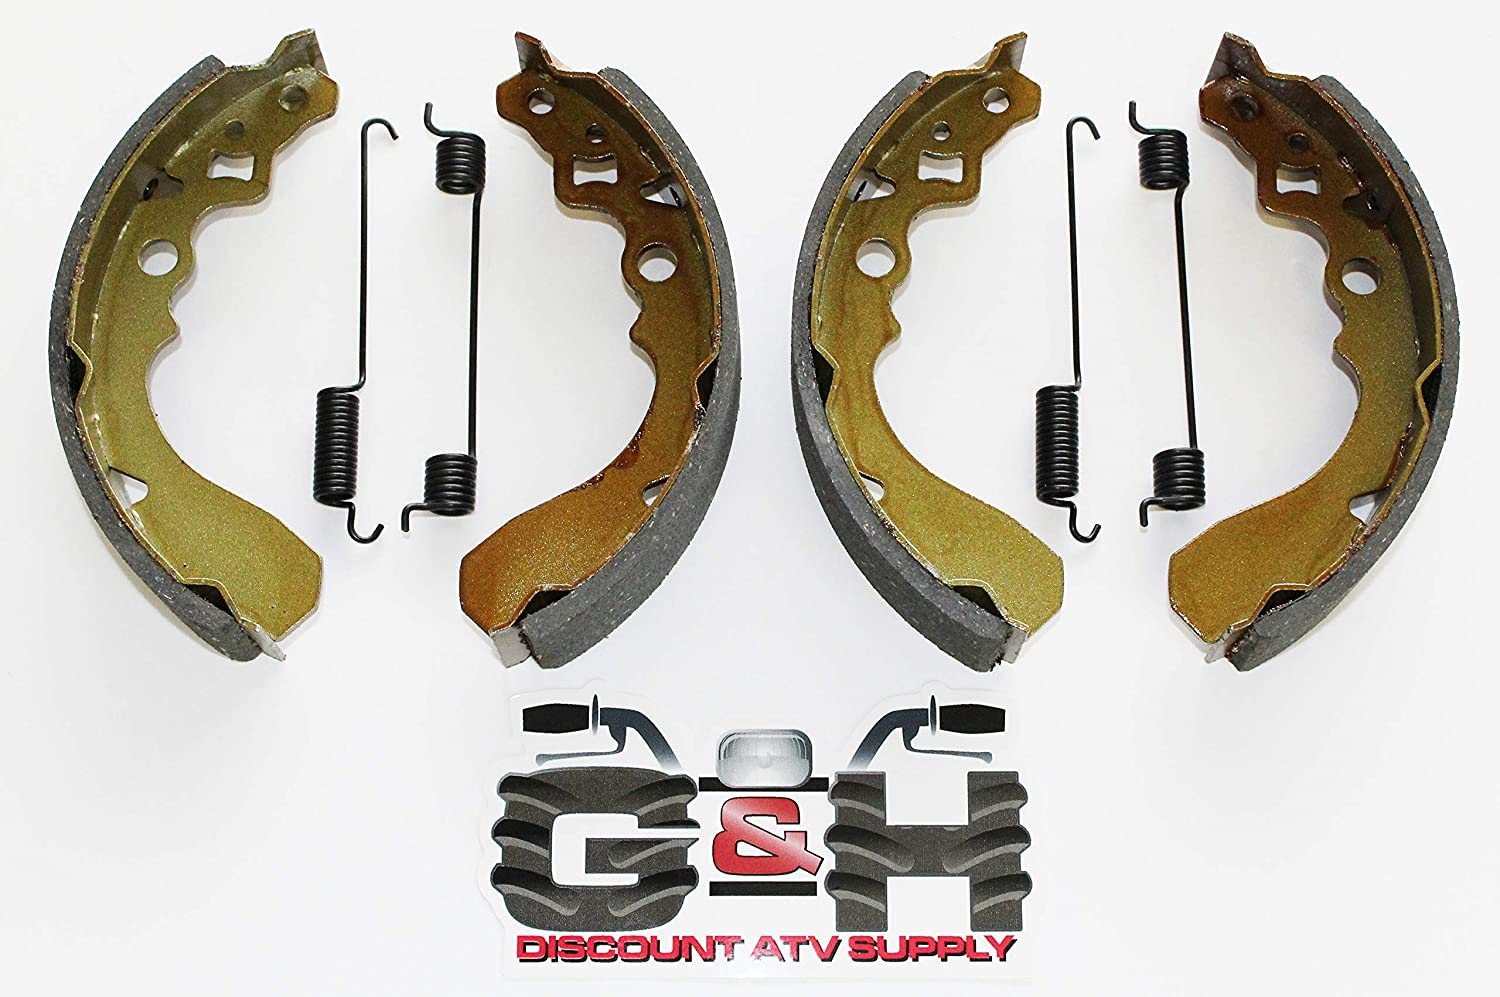 2 Sets of WATER GROOVED Rear Brake Shoes /& Springs for the 1997-2004 Kawasaki KAF 300 Mule 500 520 550